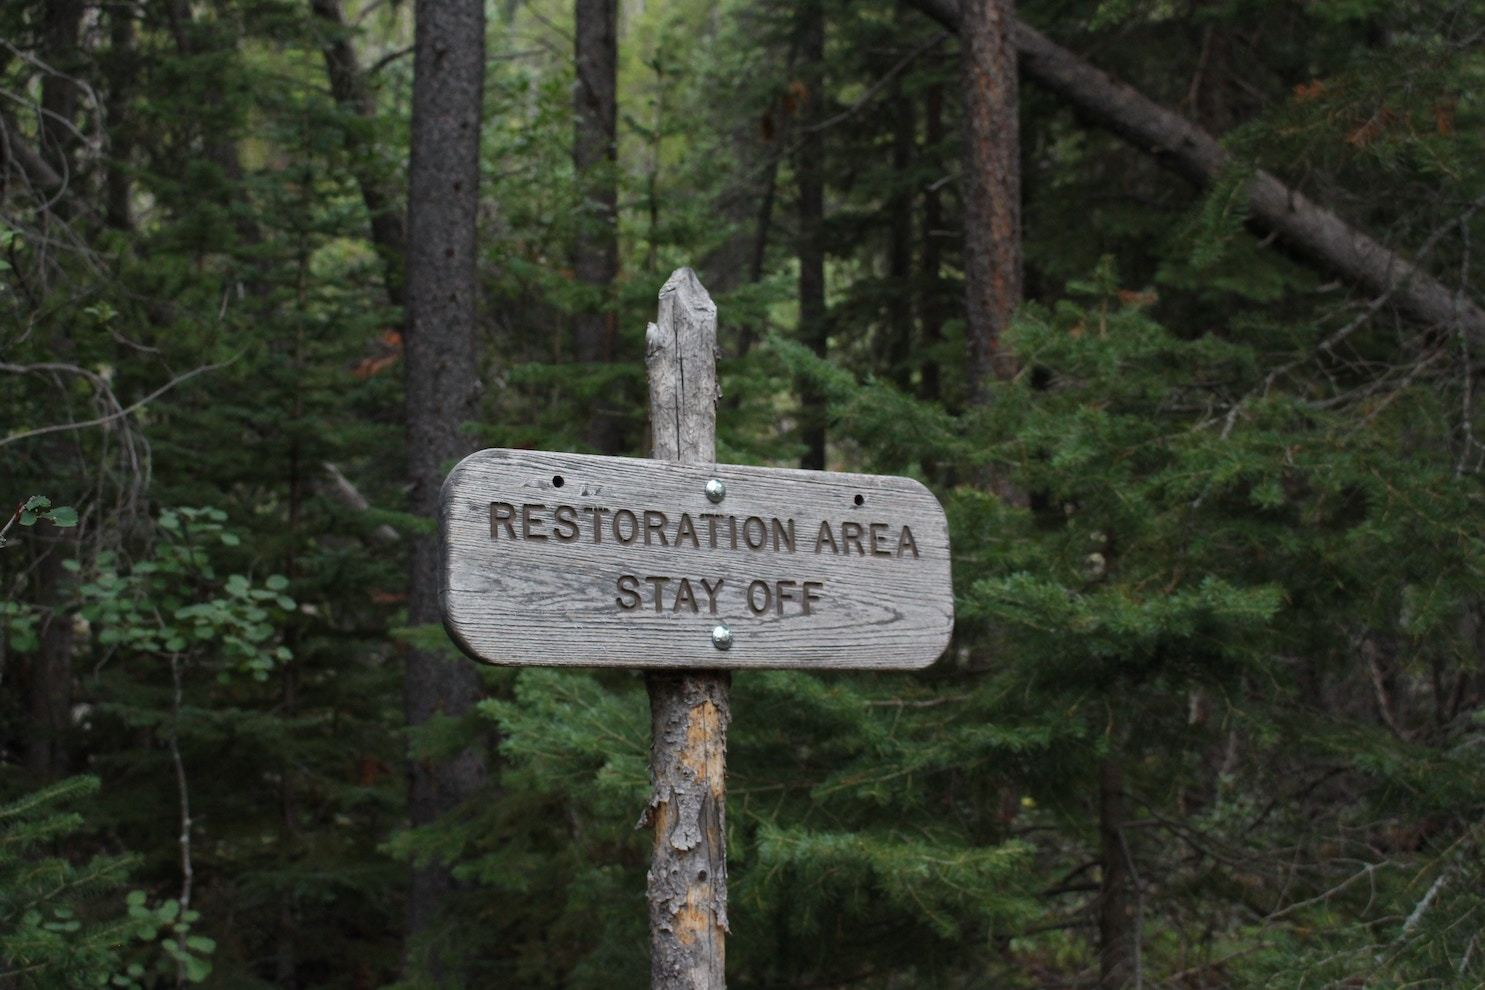 Sign in a wooded area reading